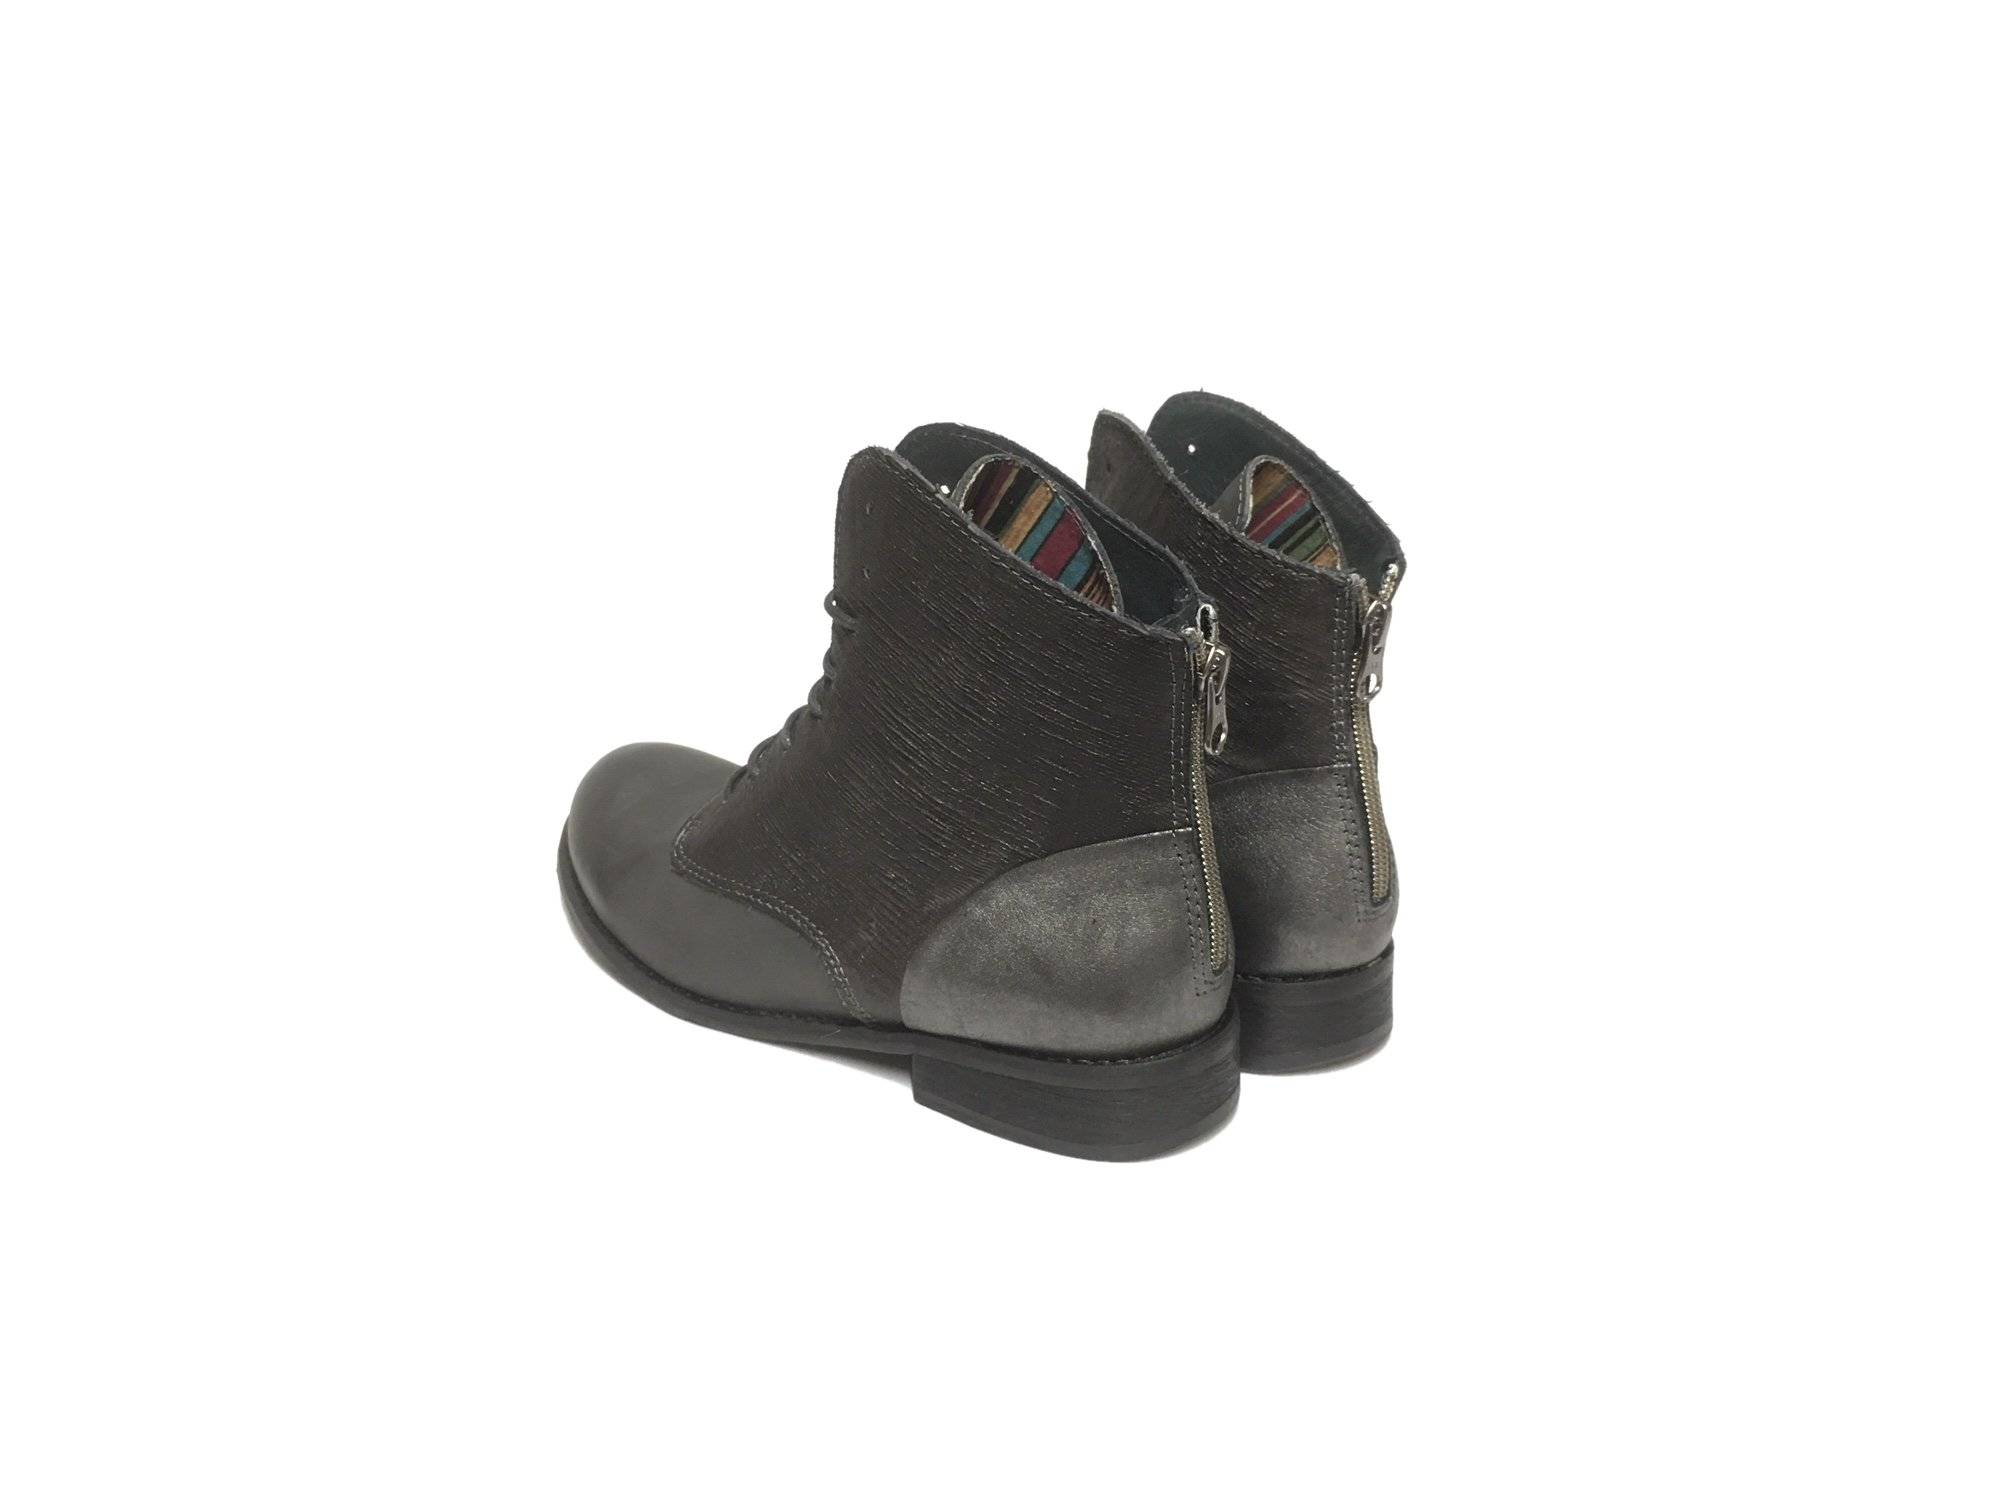 Mendrez Shoes Online